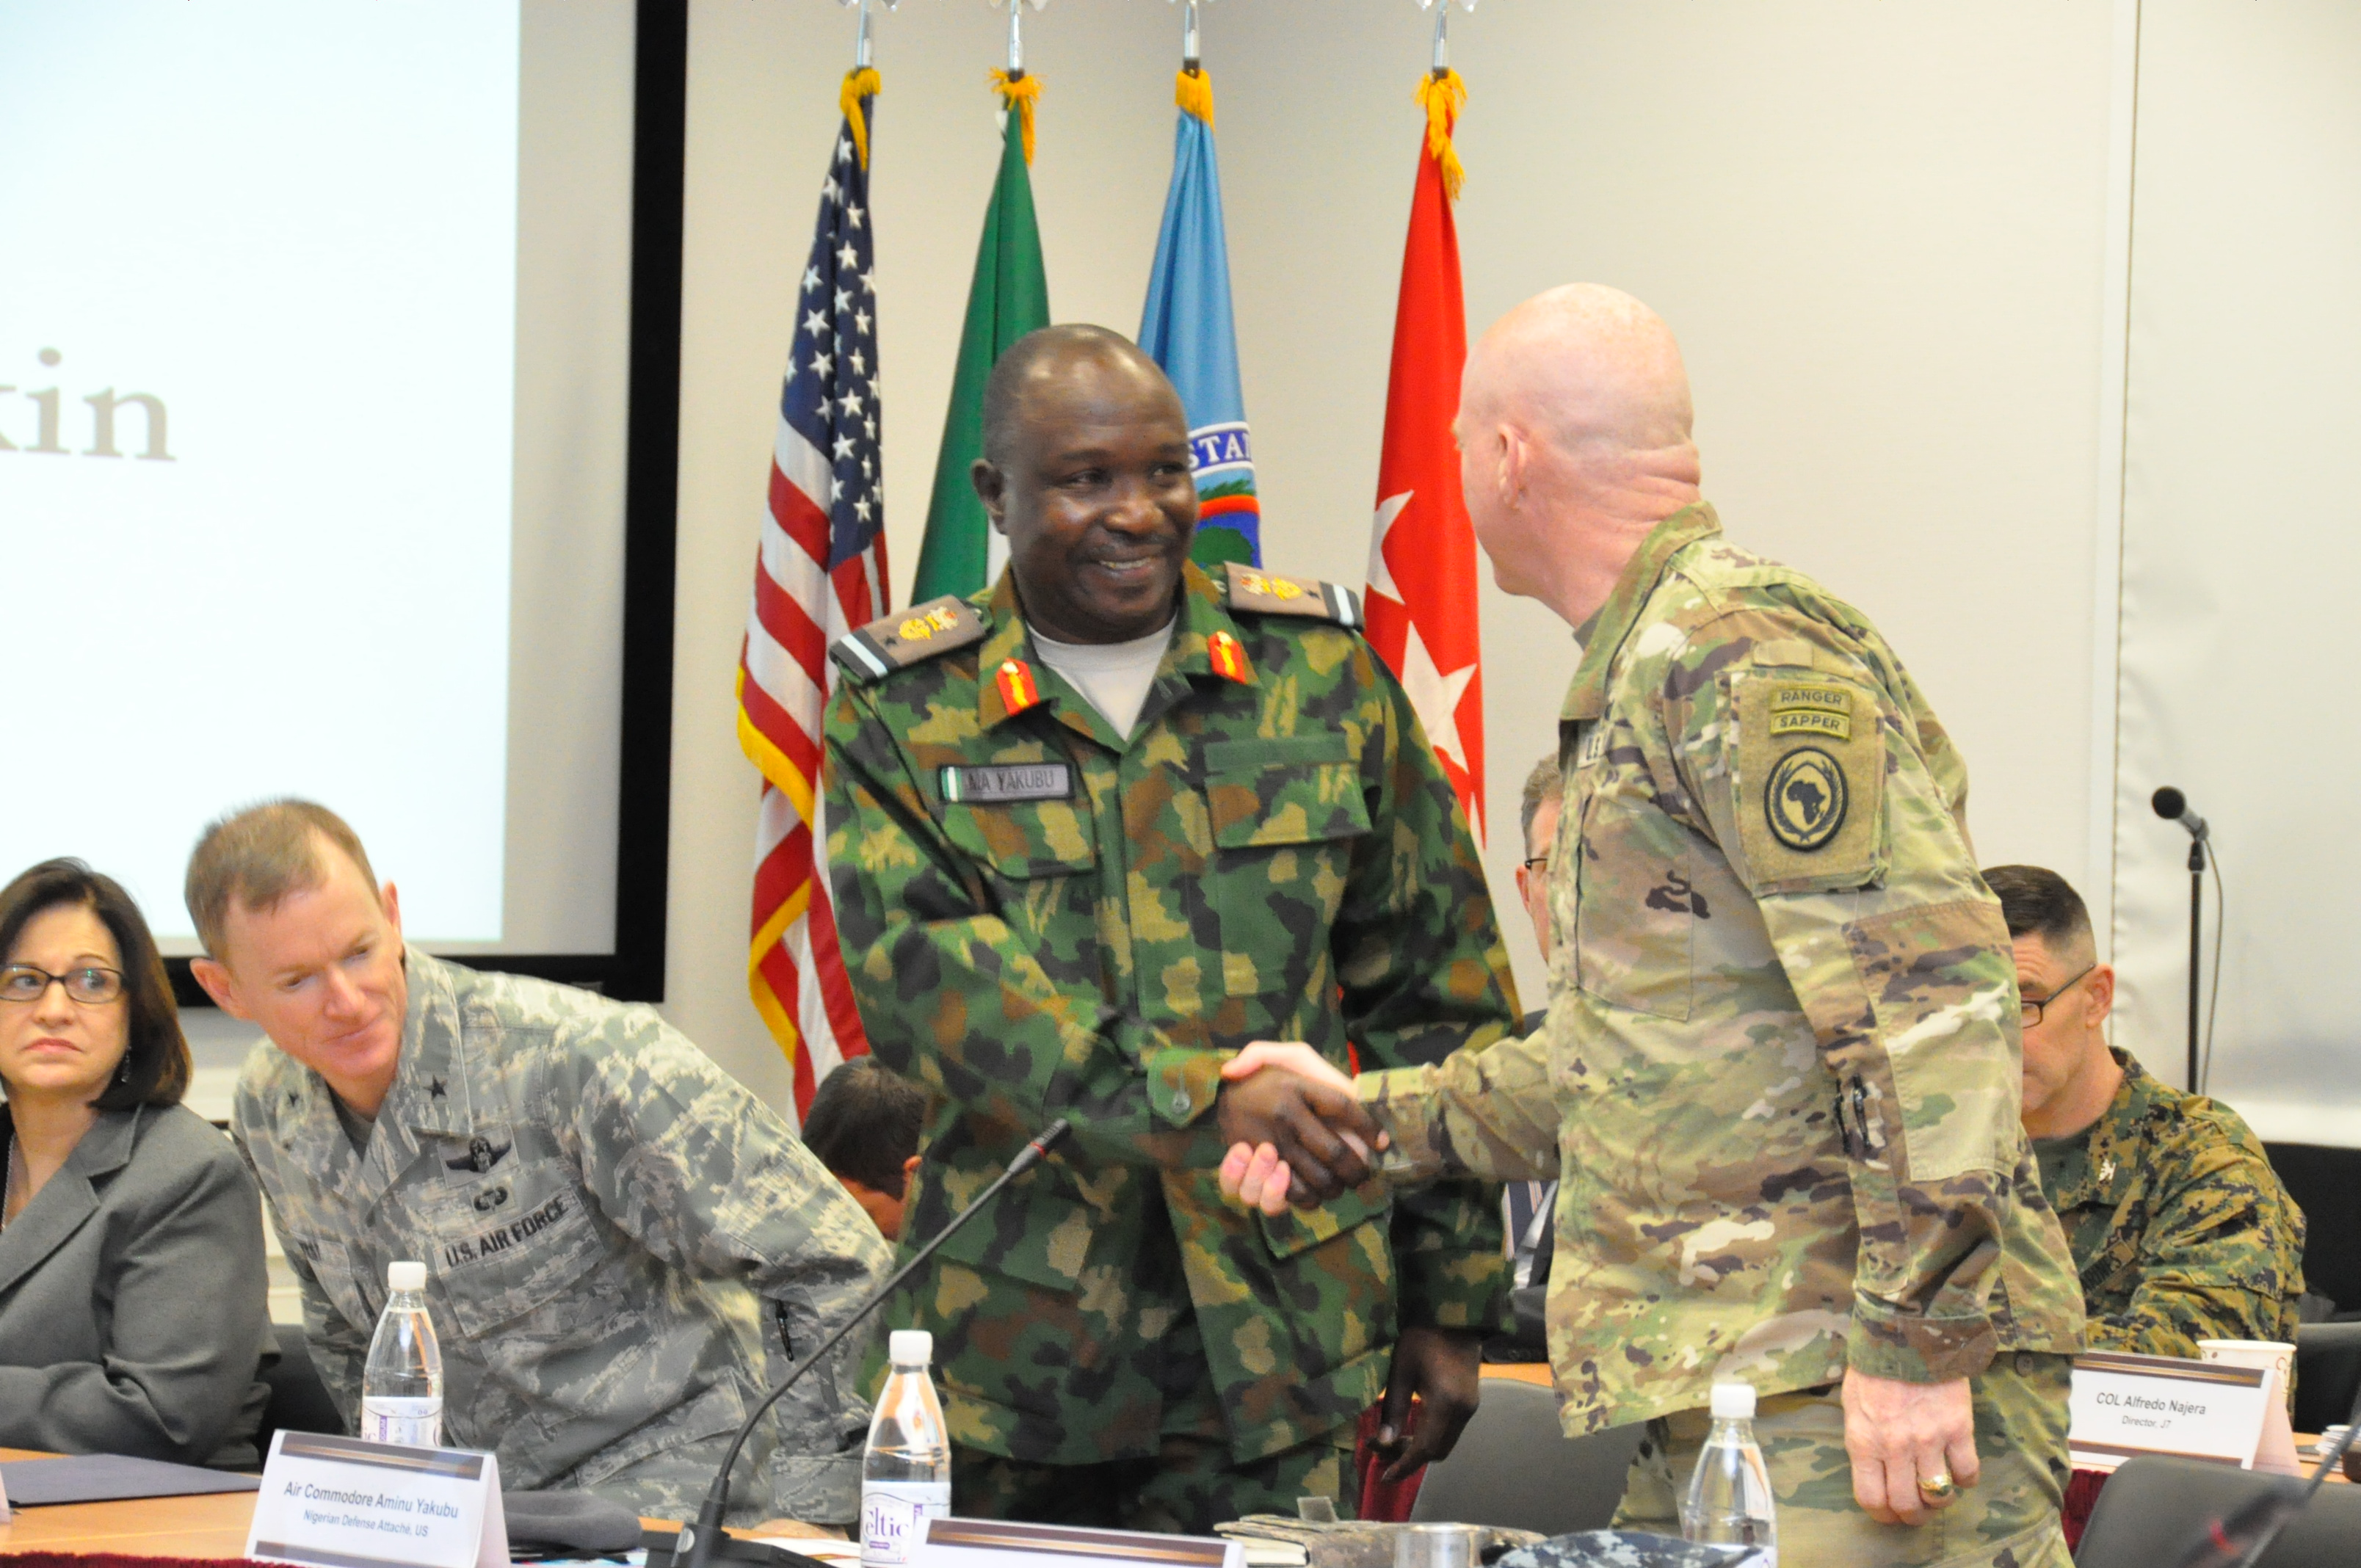 Air Commodore Aminu Yakubu, Nigeria defence attaché is greeted by Maj. Gen. Bryan Watson, AFRICOM director of operations.  The two were participants in a two-day meeting with Gen. Abayomi Olonisakin, Nigeria CDS, and several of his most senior officers and AFRICOM staff and component commanders.  The purpose of the visit was to reinforce the importance of a strong US-Nigeria security cooperation relationship with topics focused on ways to counter terrorism, joint operations, logistics and maritime security in the Gulf of Guinea, Feb. 9, 2016, U.S. Army Garrison Stuttgart, Germany. (Photo by Brenda Law, U.S. Africa Command Public Affairs/RELEASED)